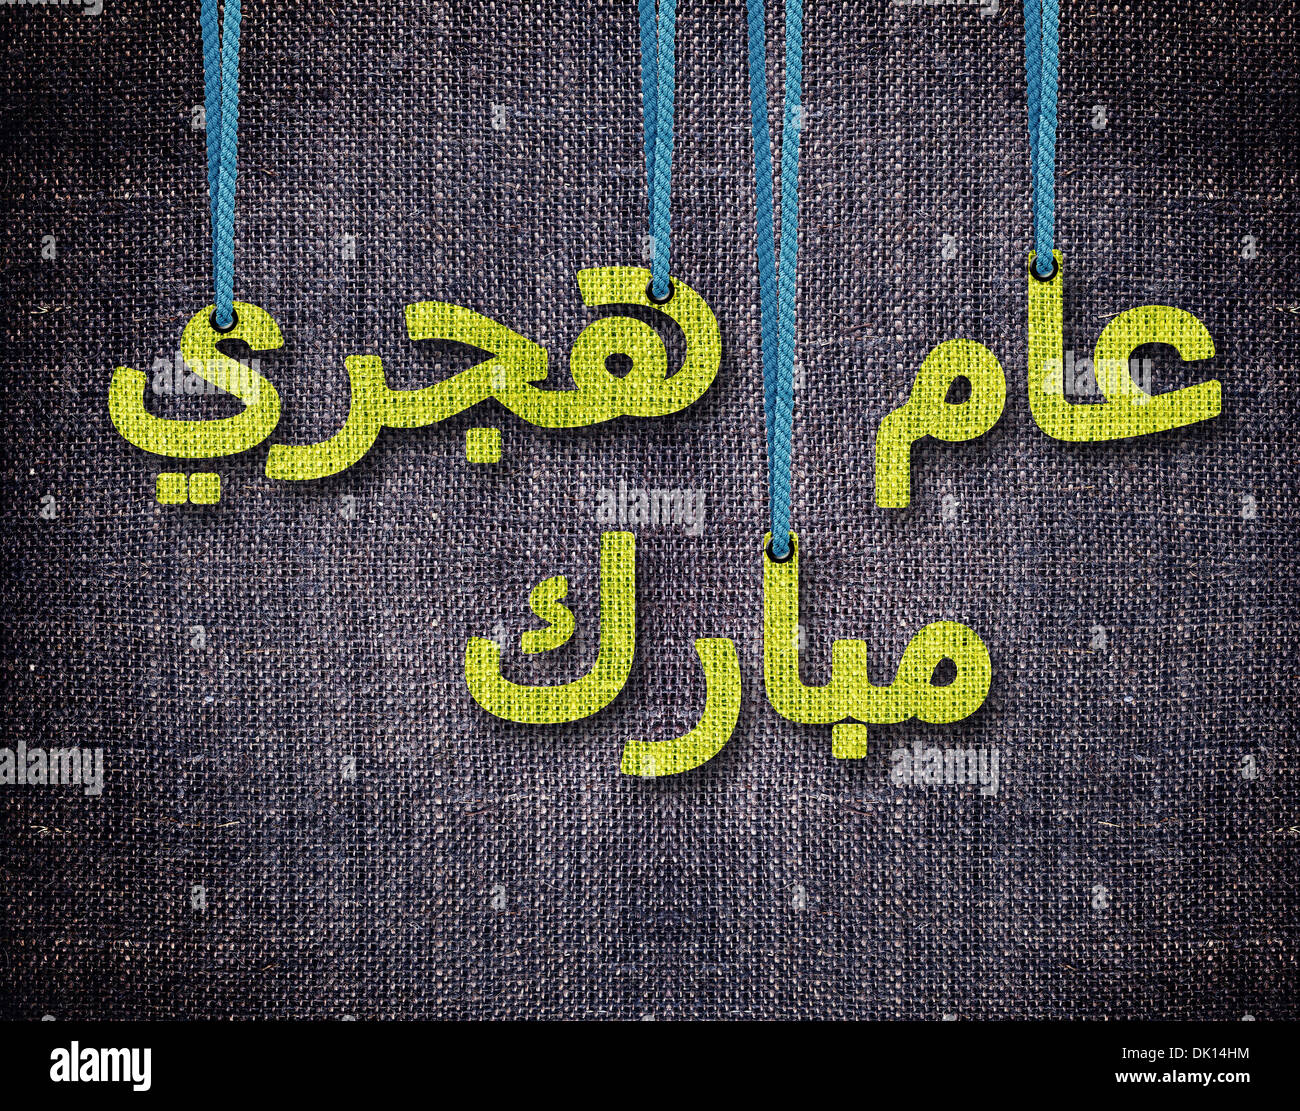 wishing you a blessed new year in arabic language conceptual image for the islamic new